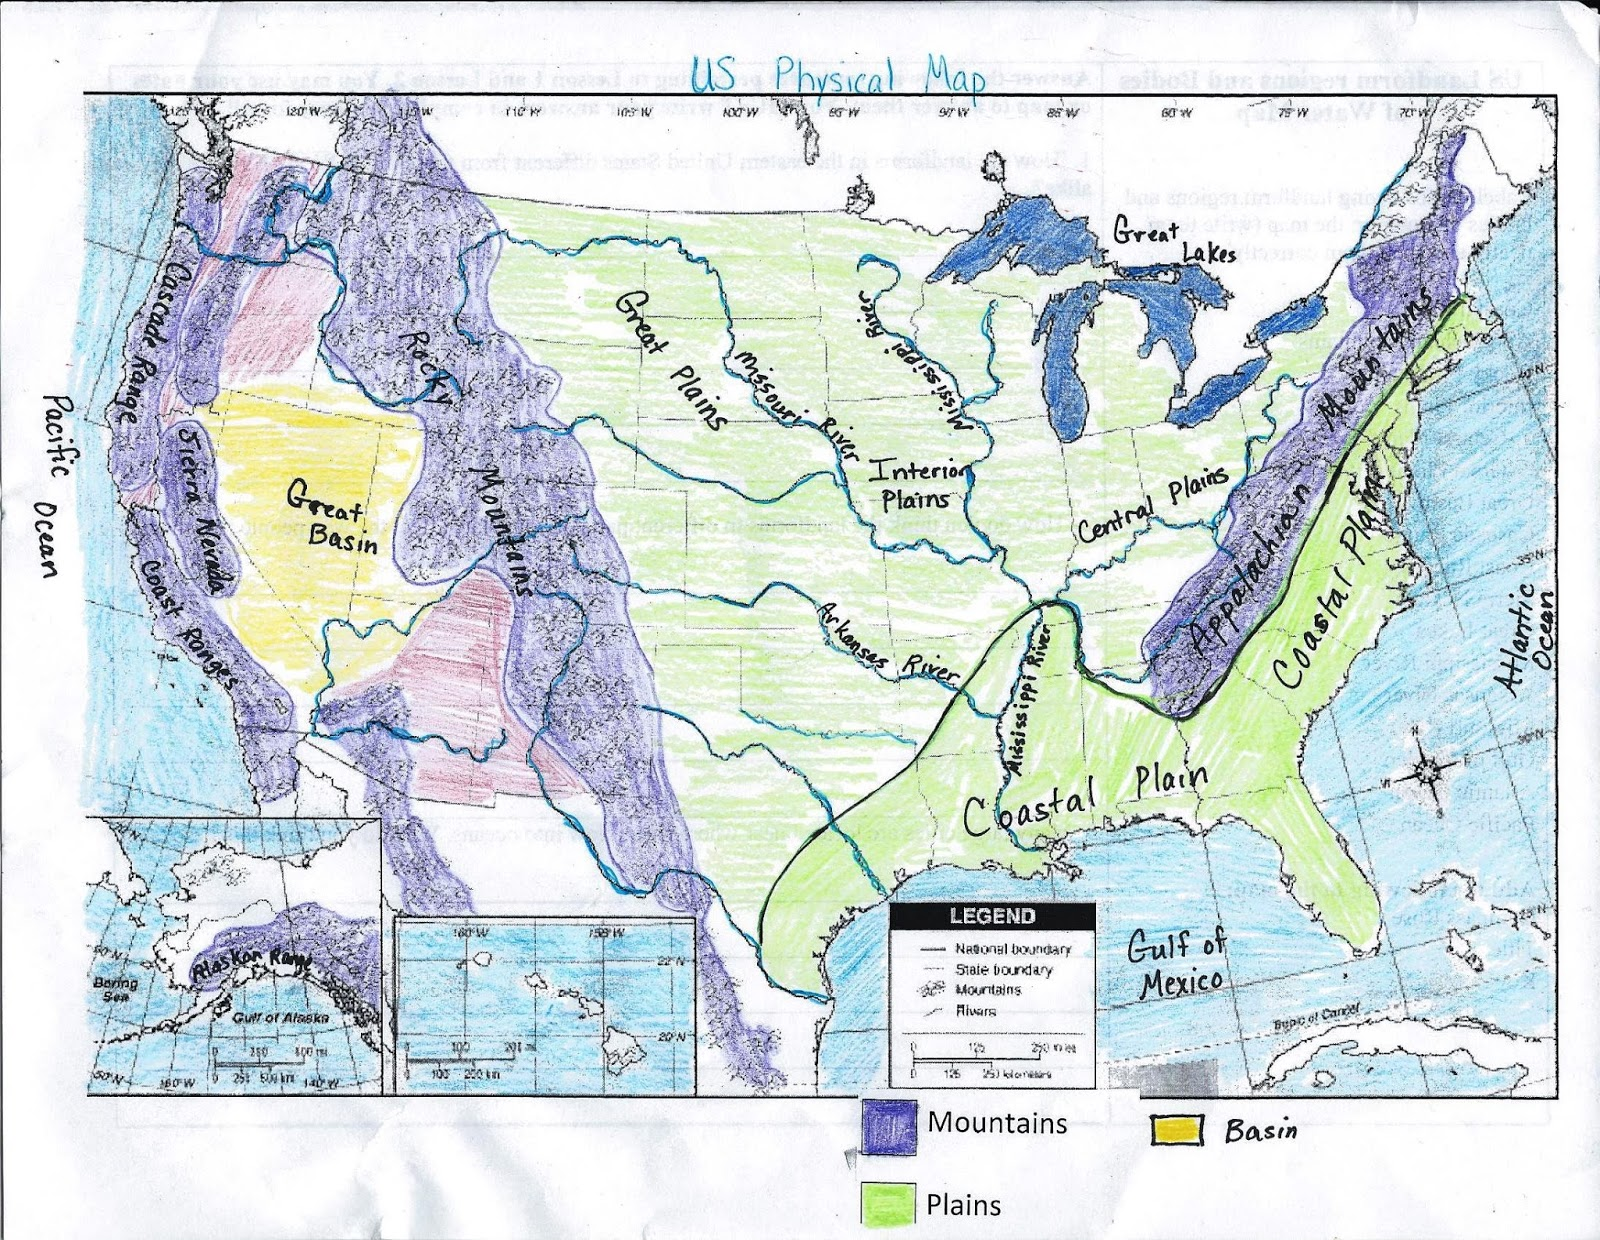 Physical Map Of The United States Of America Unlabeled Map Of The - Us physical features map labeled